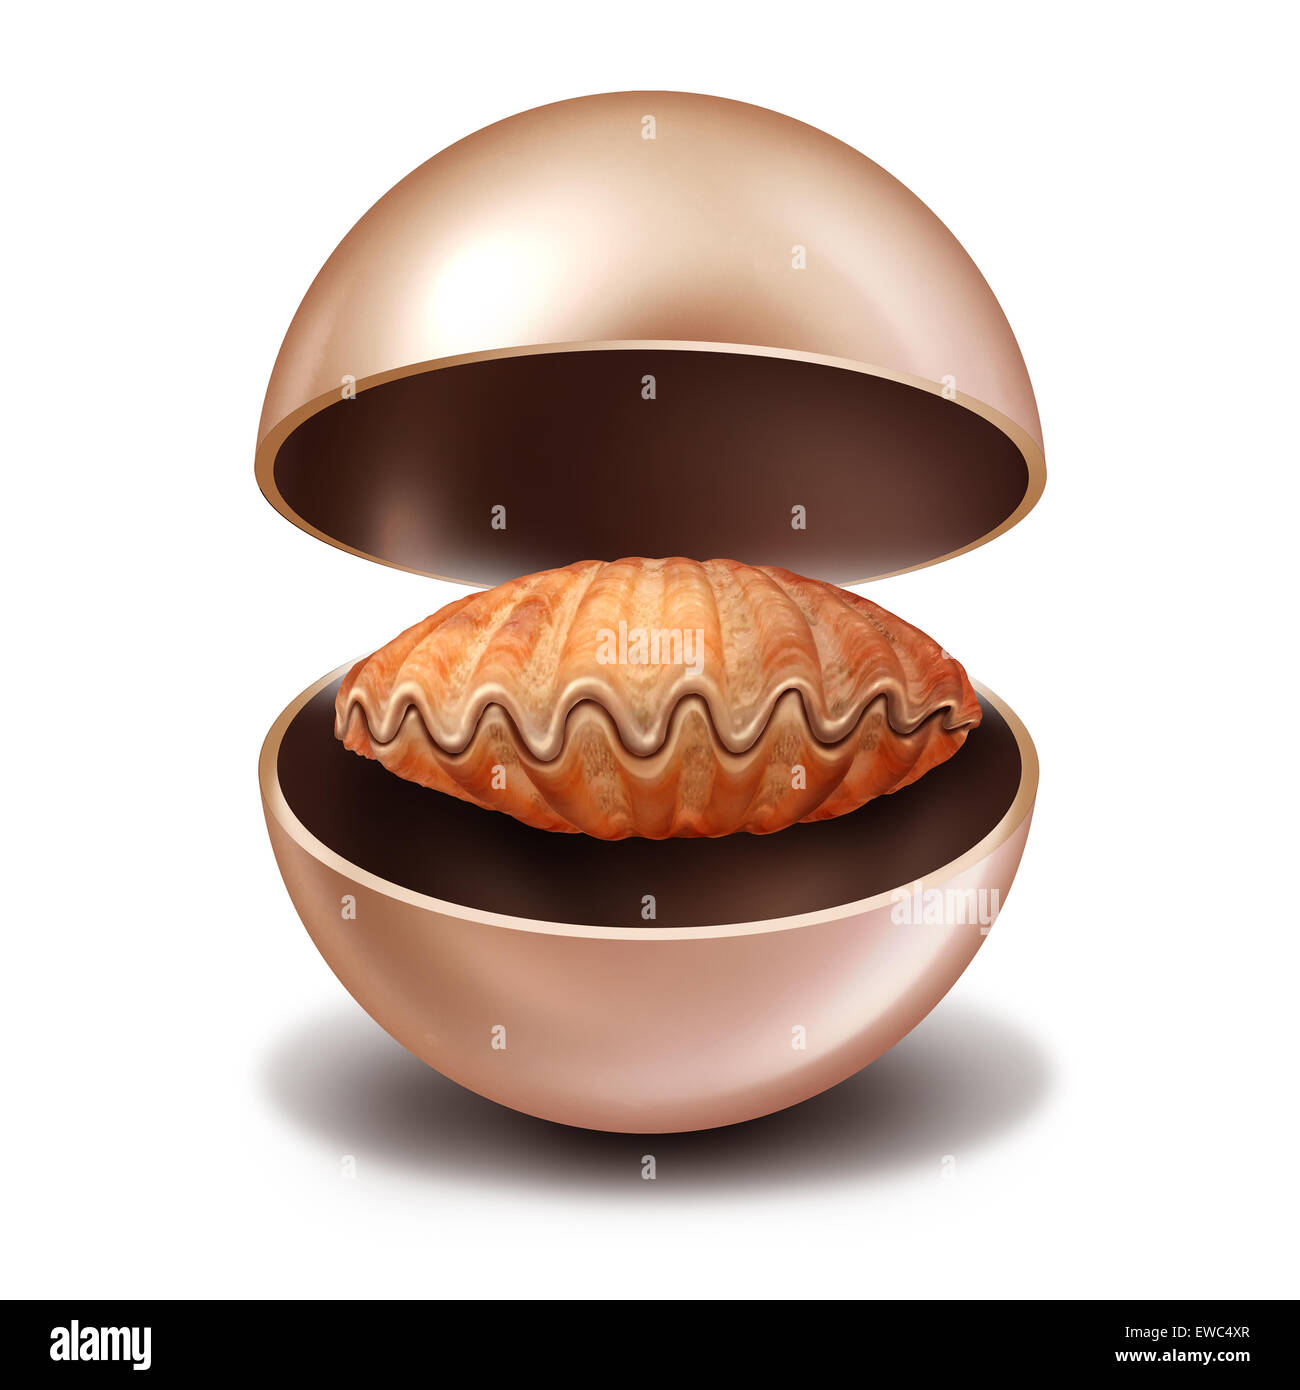 Reversal of fortune as an open rare pearl with a sea shell inside as a contrarian metaphor for economic or financial - Stock Image